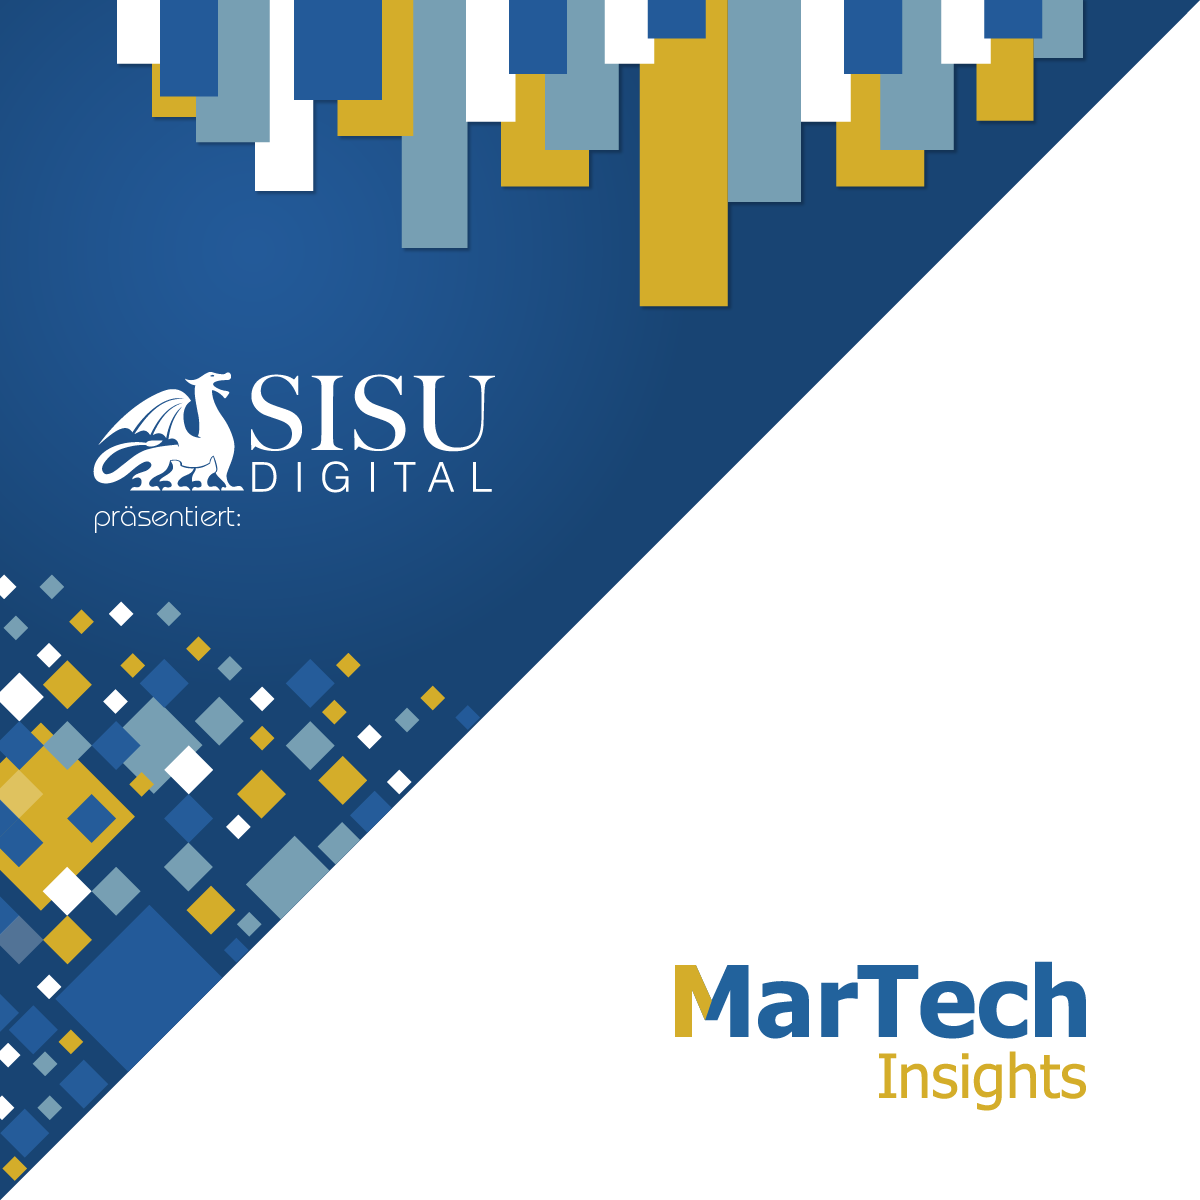 MarTech Insights